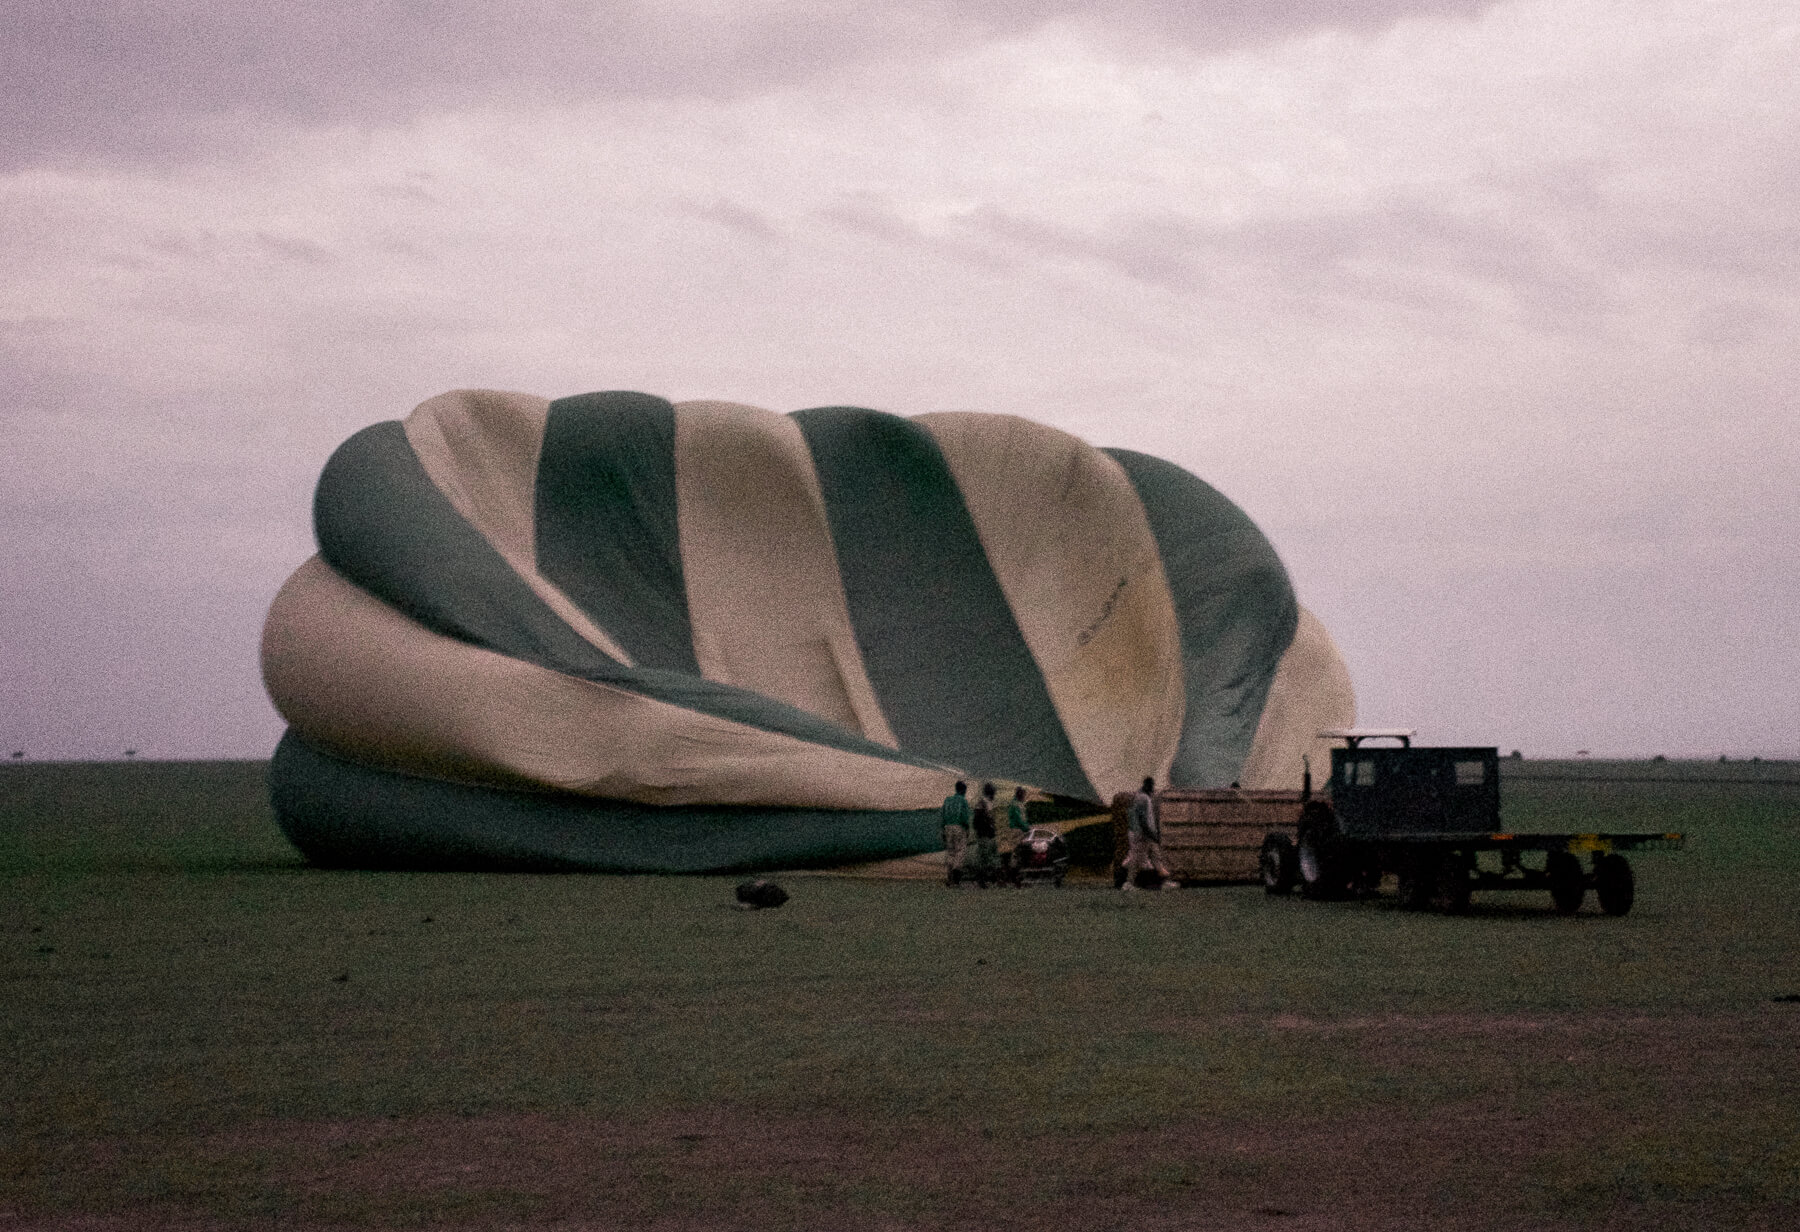 A green striped hot air balloon deflated on the ground